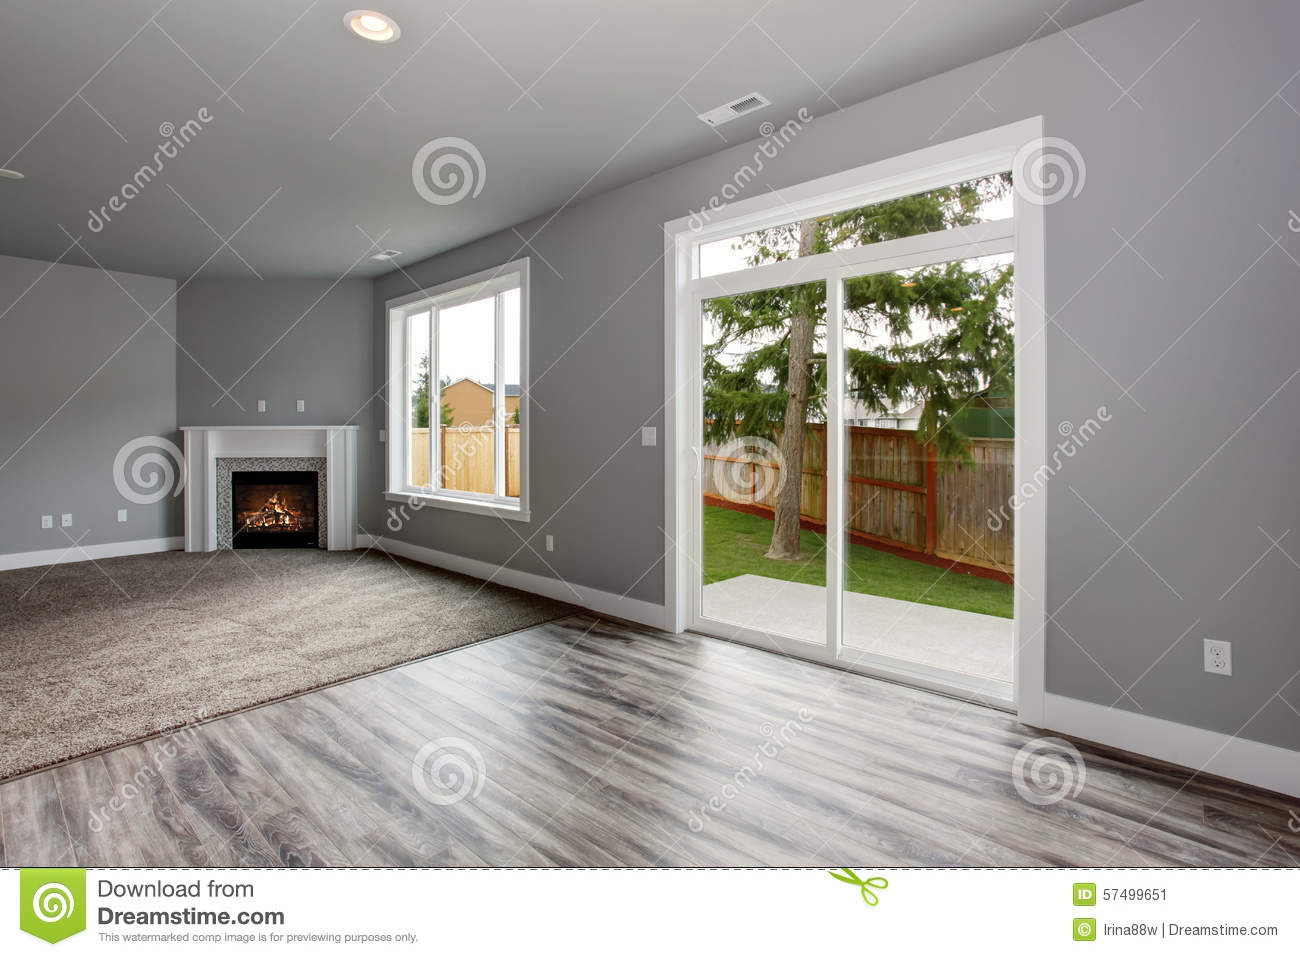 Interieur Maison Modern : Modern and completely gray interior of home. stock image image of